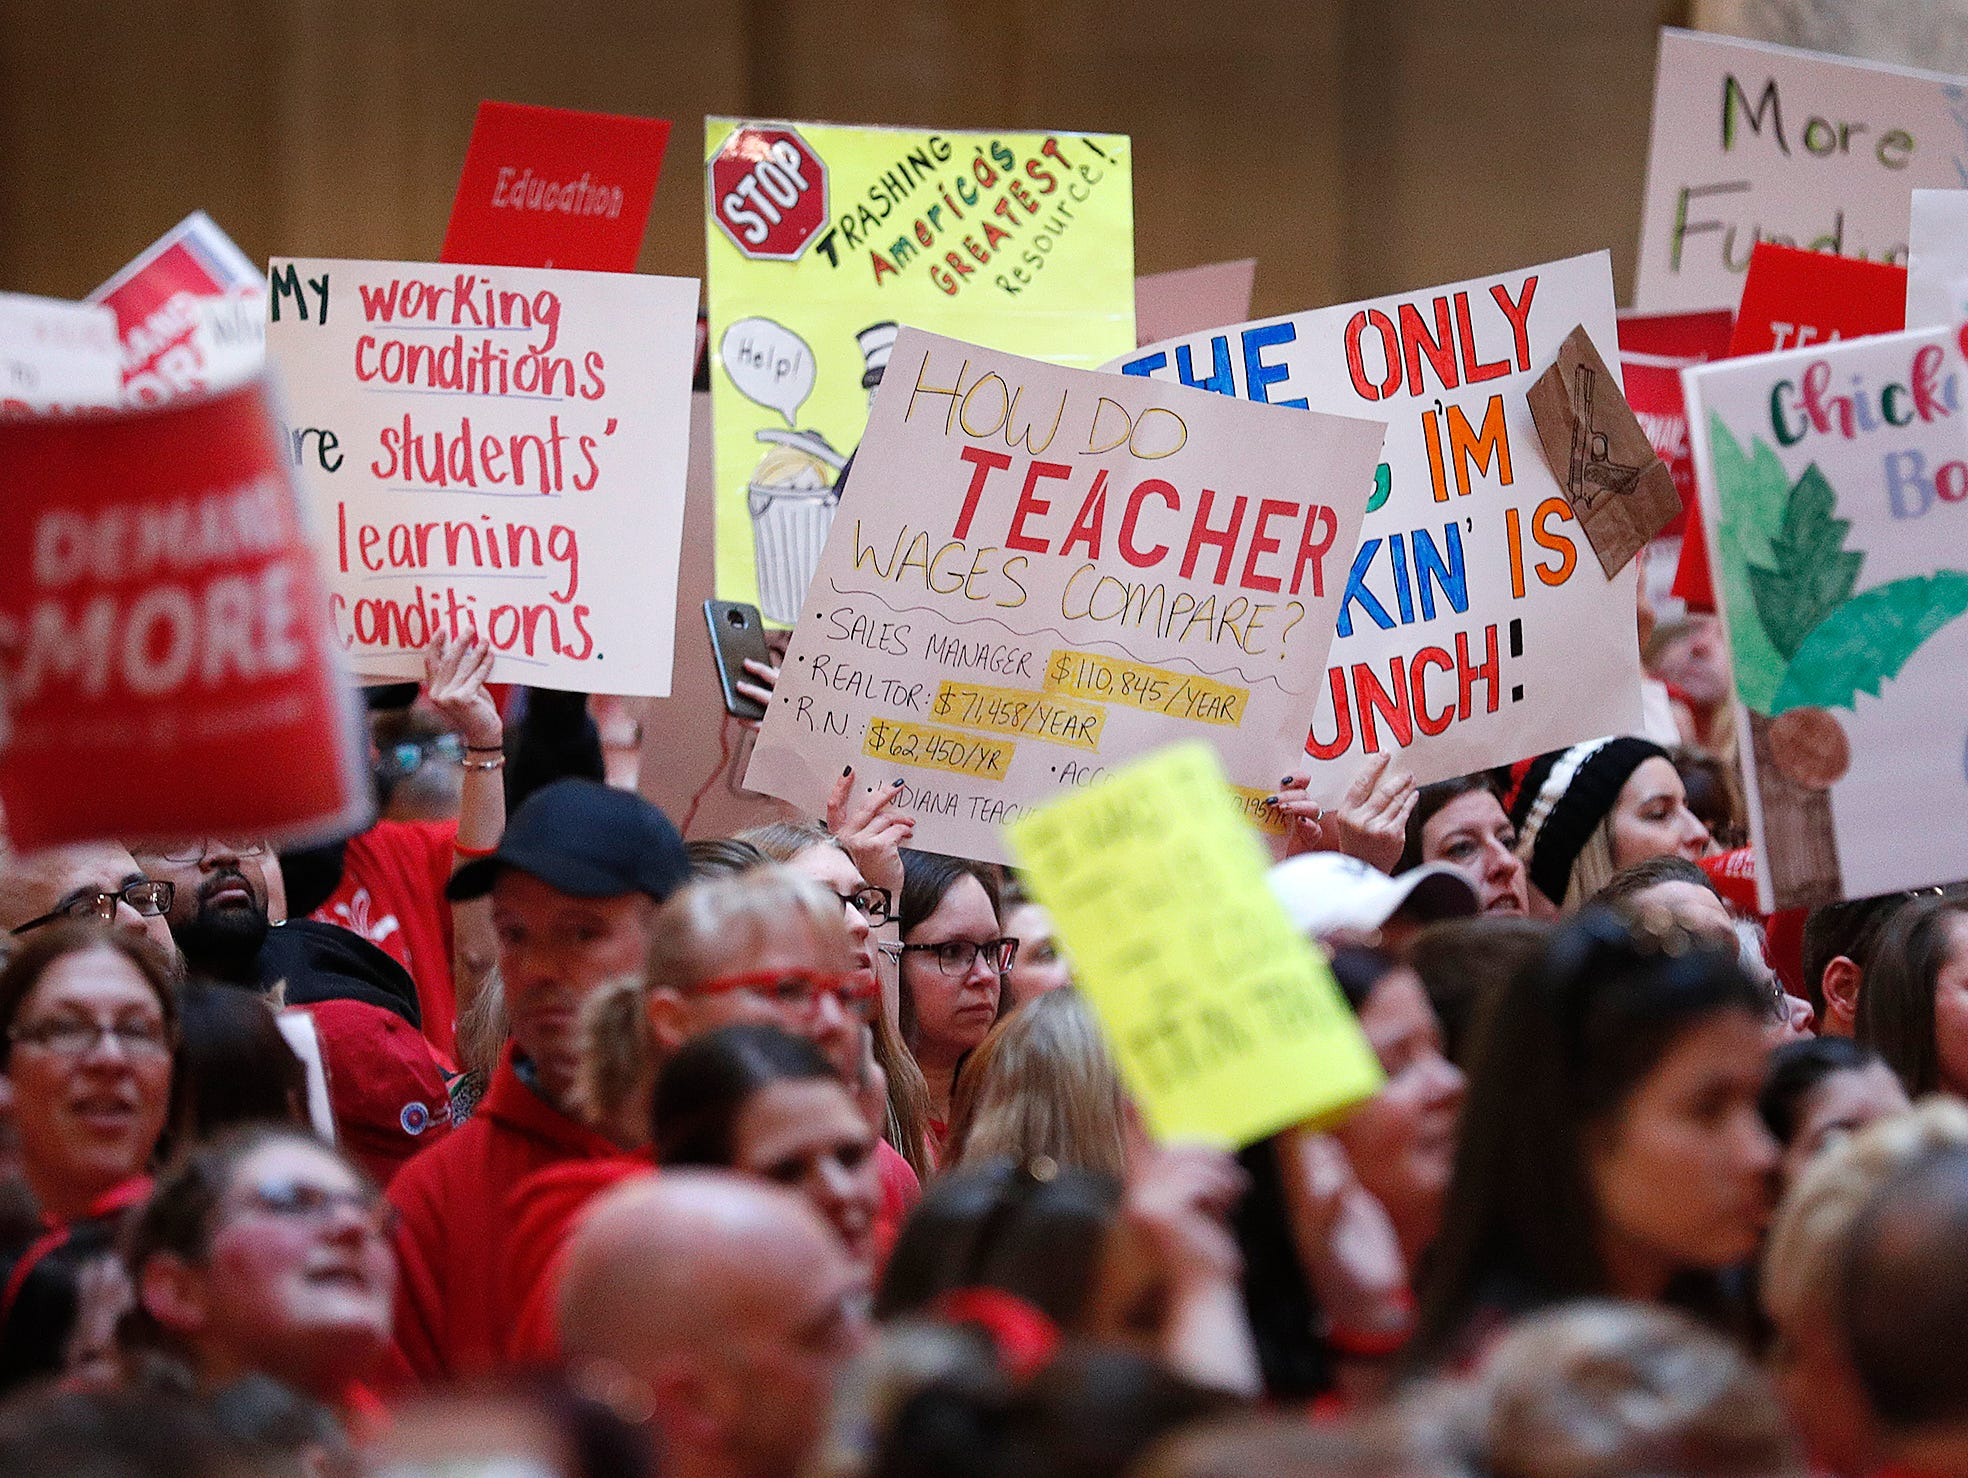 Thousands turned out for the Indiana Red for Ed Rally at the Indiana Statehouse on Saturday, Mar 9, 2019. Teachers, educators and supporters were on hand to support public education and demand lawmakers provide more resources for our kids and increased pay for teachers.